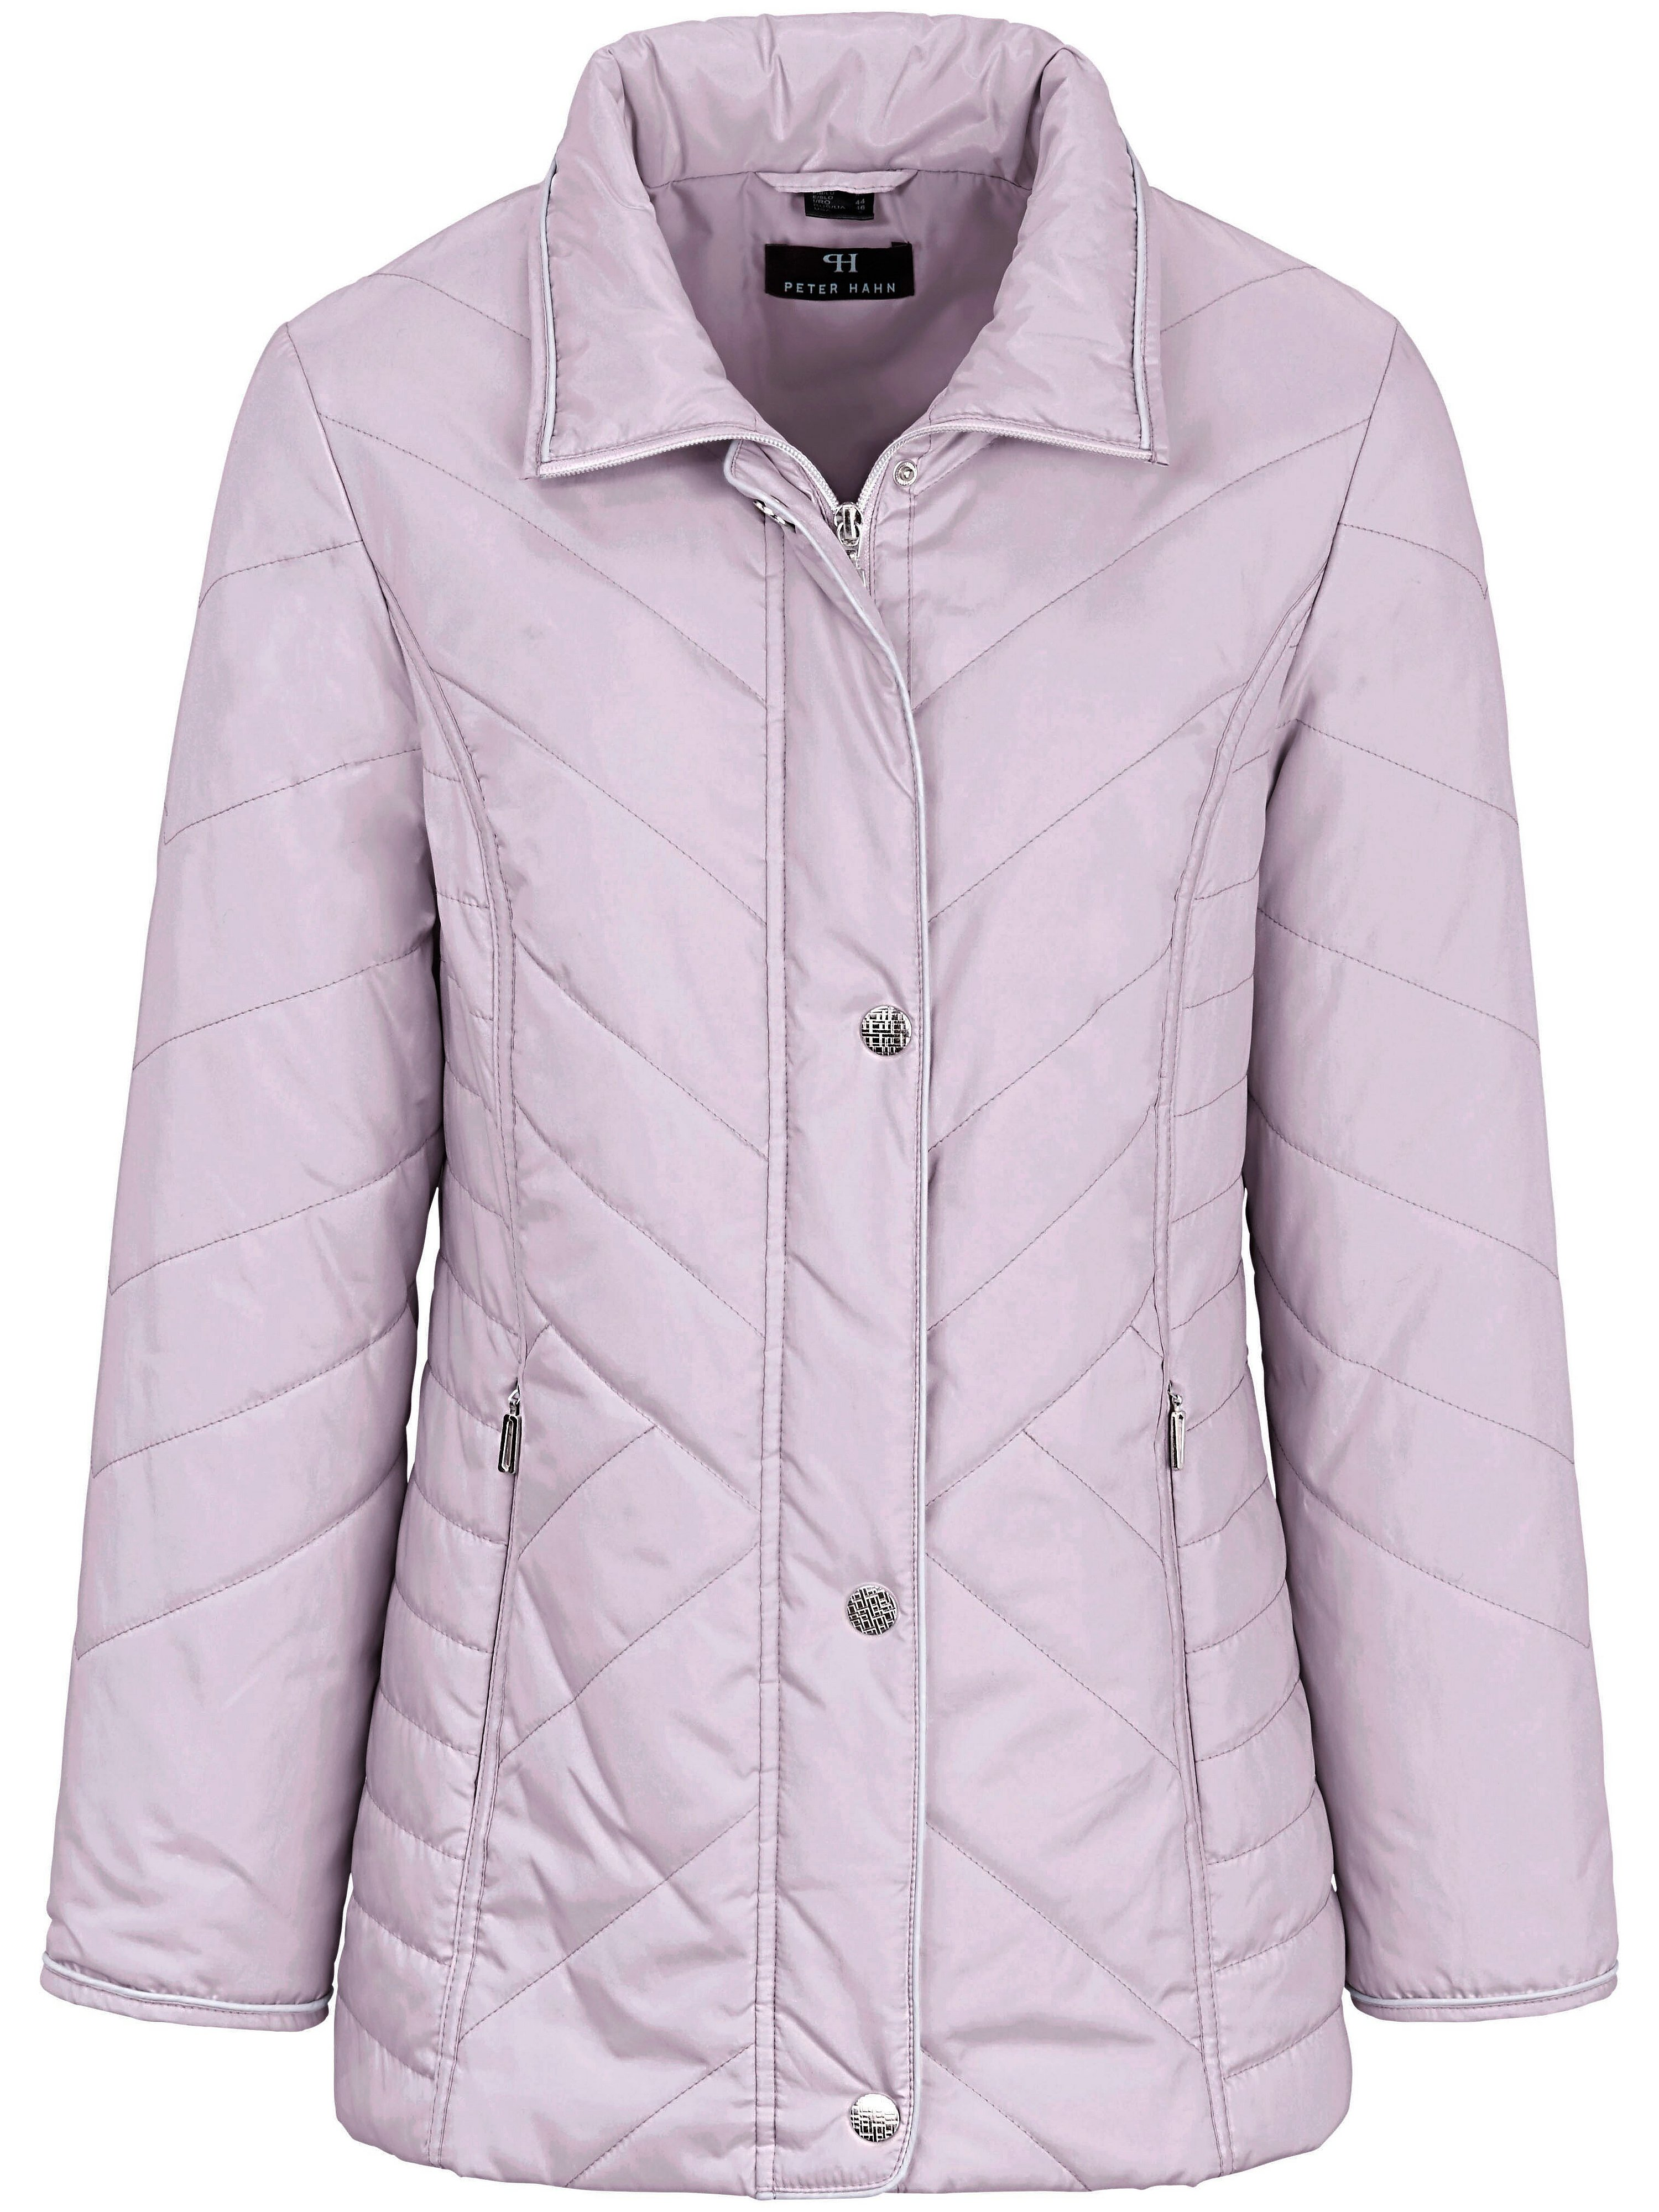 Steppjacke Peter Hahn rosé